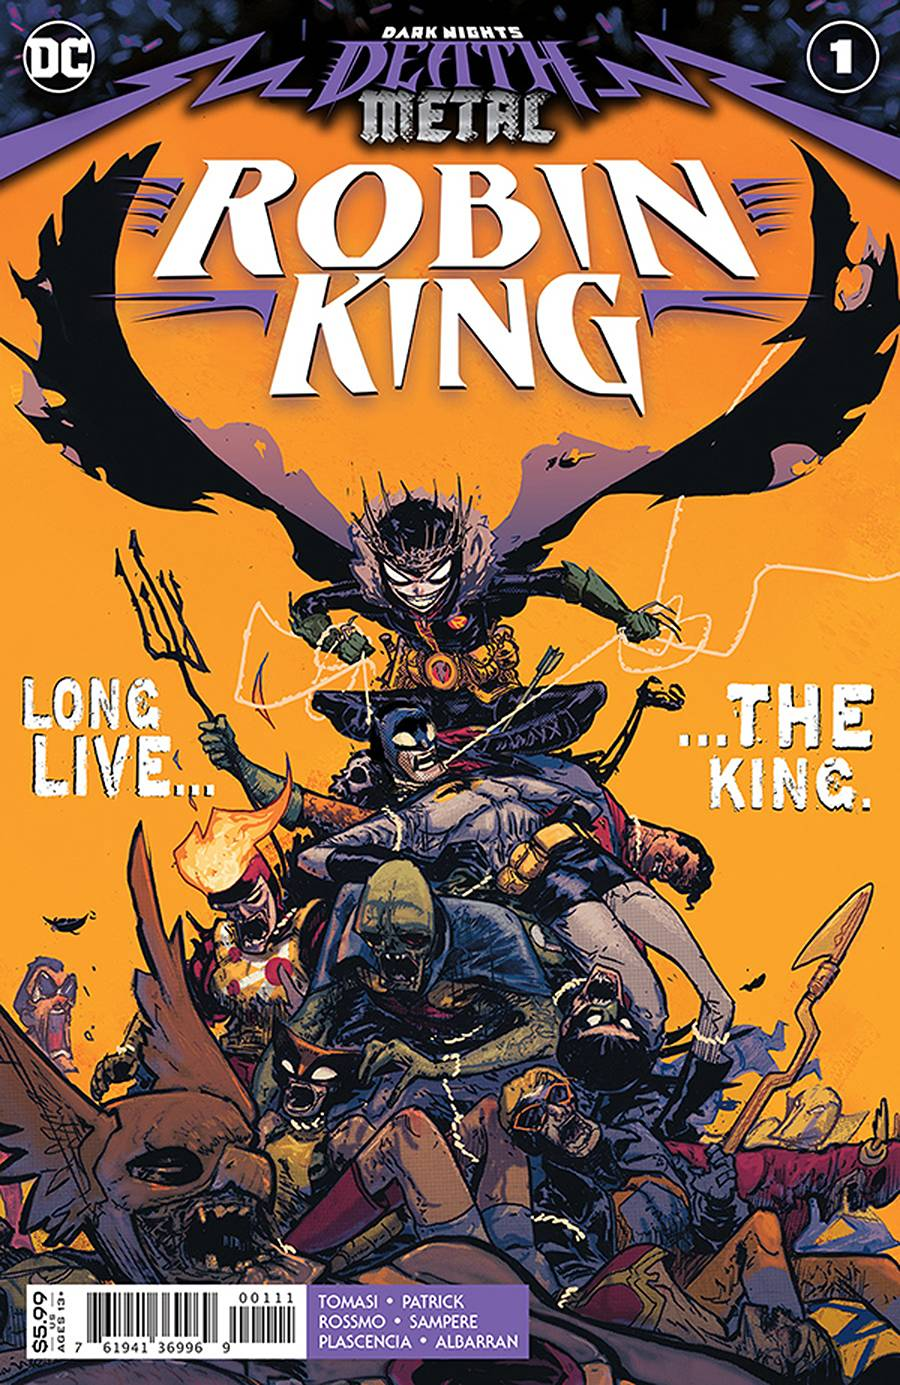 Dark Nights Death Meatal Robin King #1